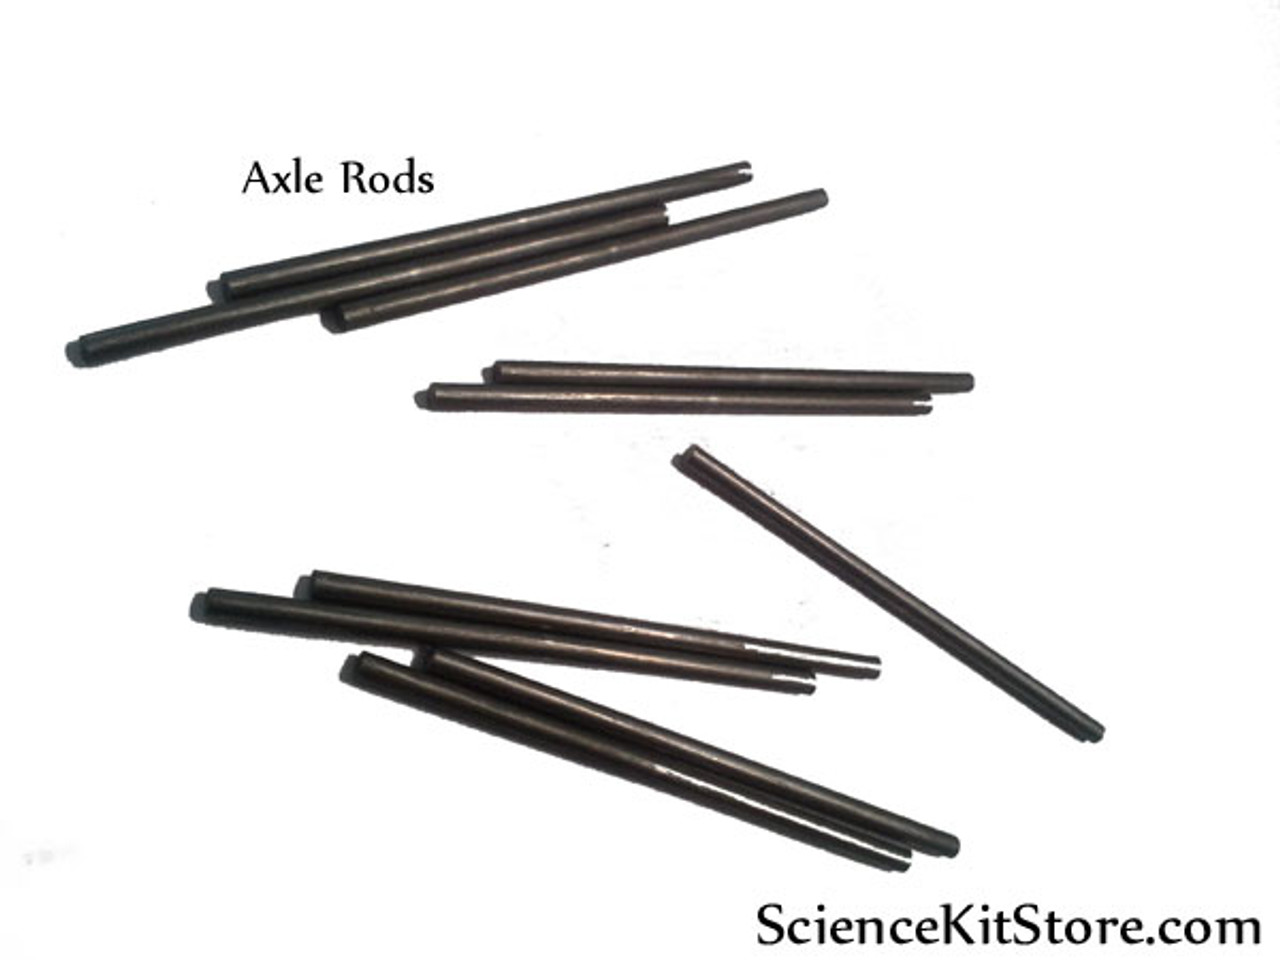 Axle Rods for Wheels (Pack of 100 Axles)